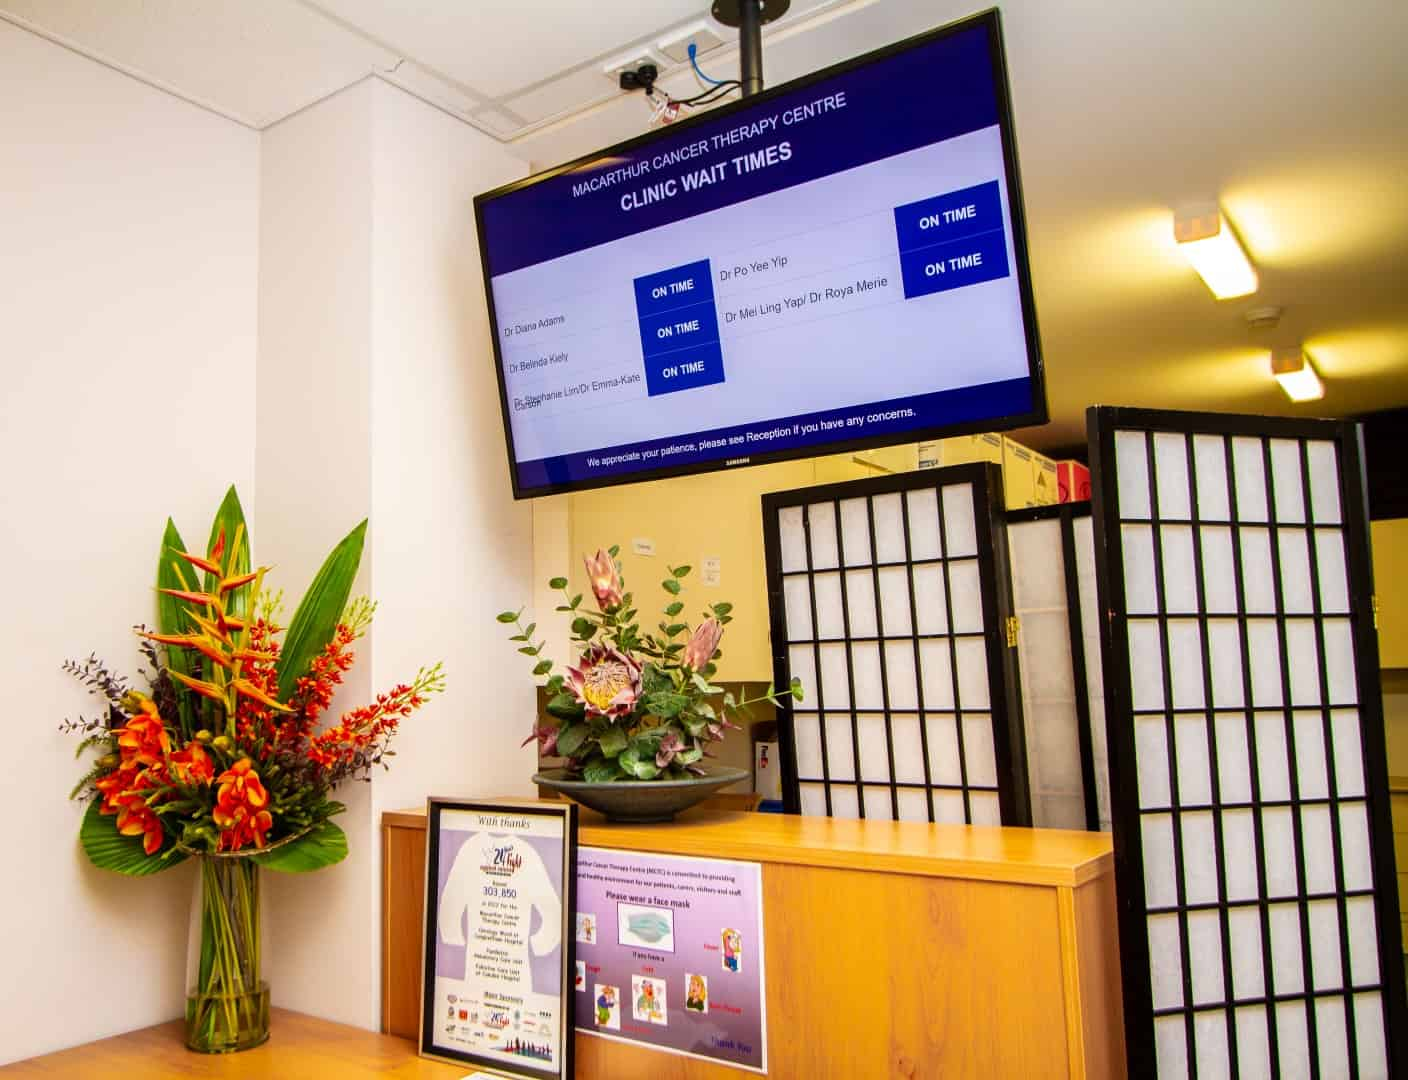 Advertise Me Cancer Therapy Centre Clinic Wait Times